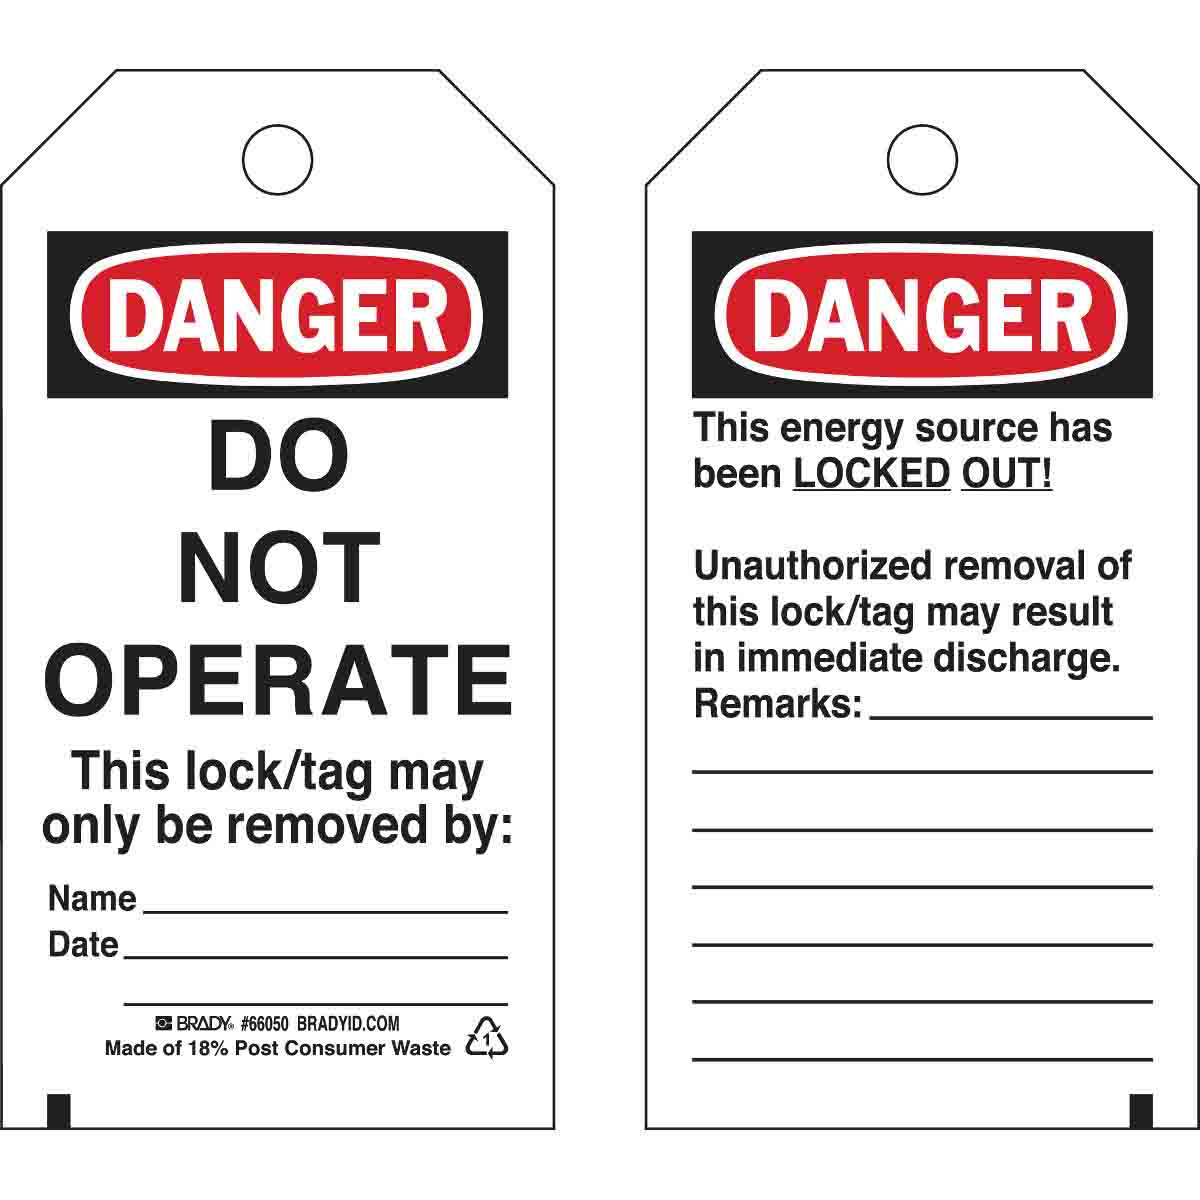 BRADY 66050 Lockout Tags 25/pkPolyester, Black/Red on White,Legend: Danger Do Not Operate,Includes Nylon Fastners, No Red Striping On Do Not Operate Message